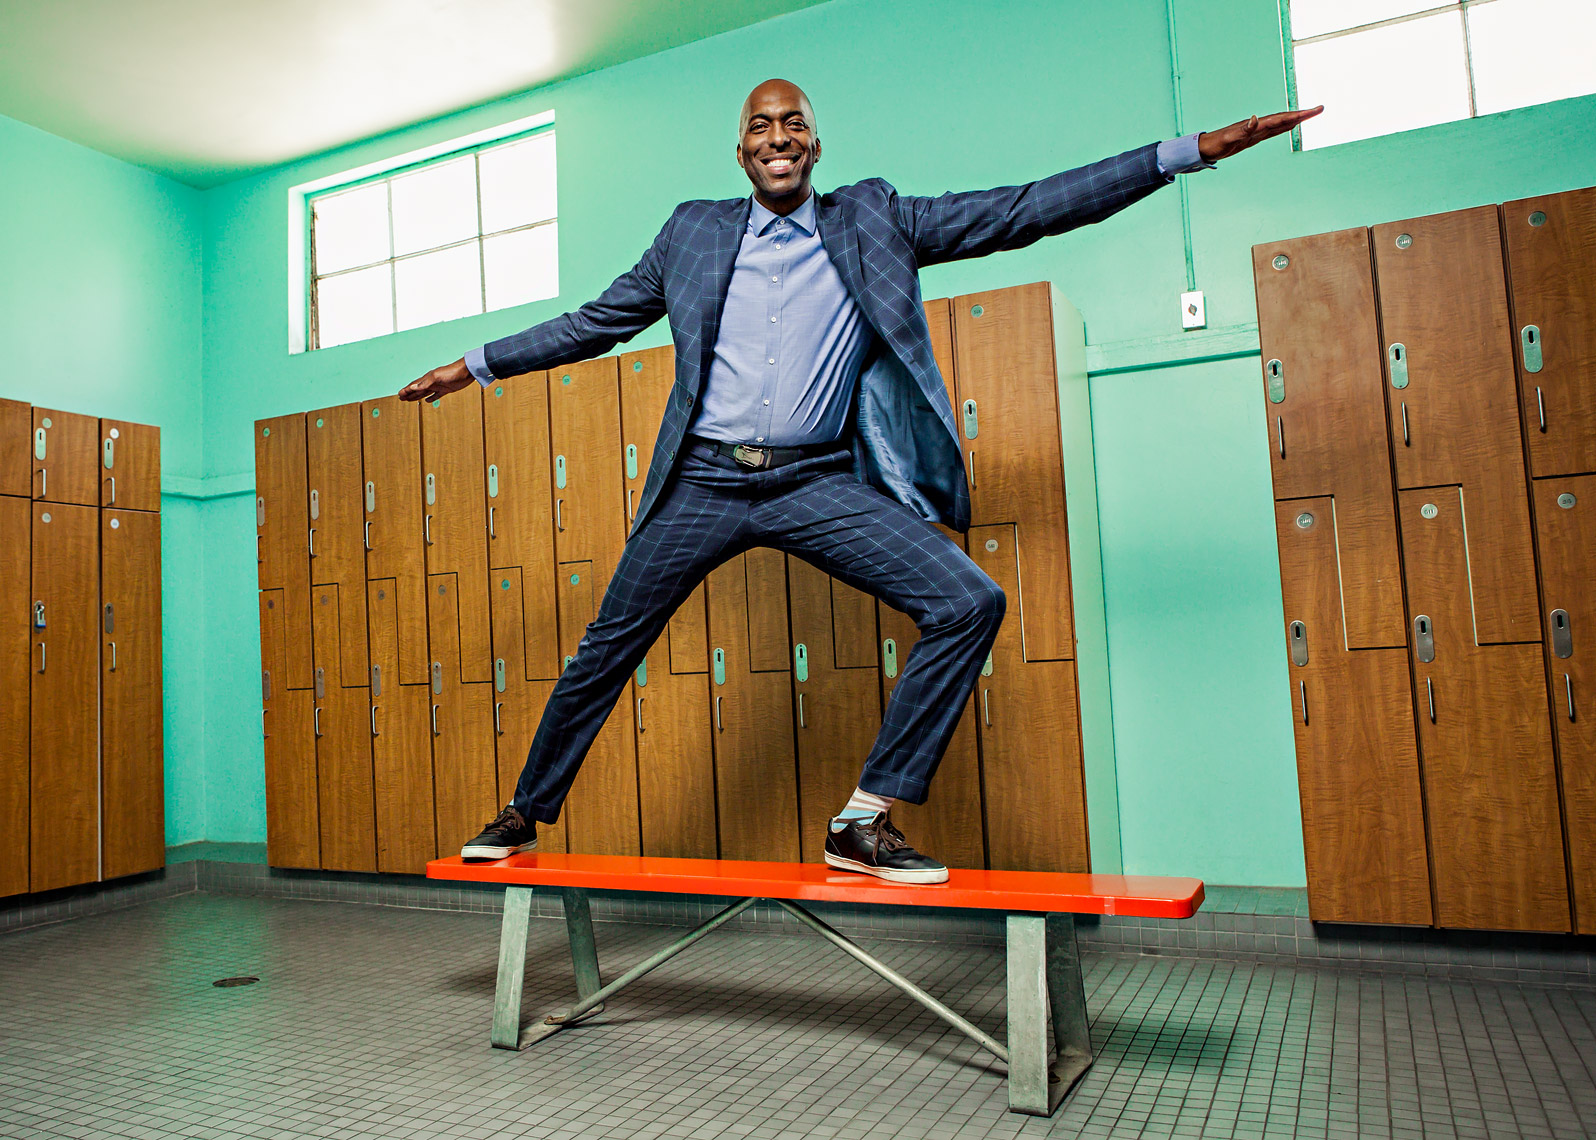 John Salley by Scott Witter for Cedars-Sinai